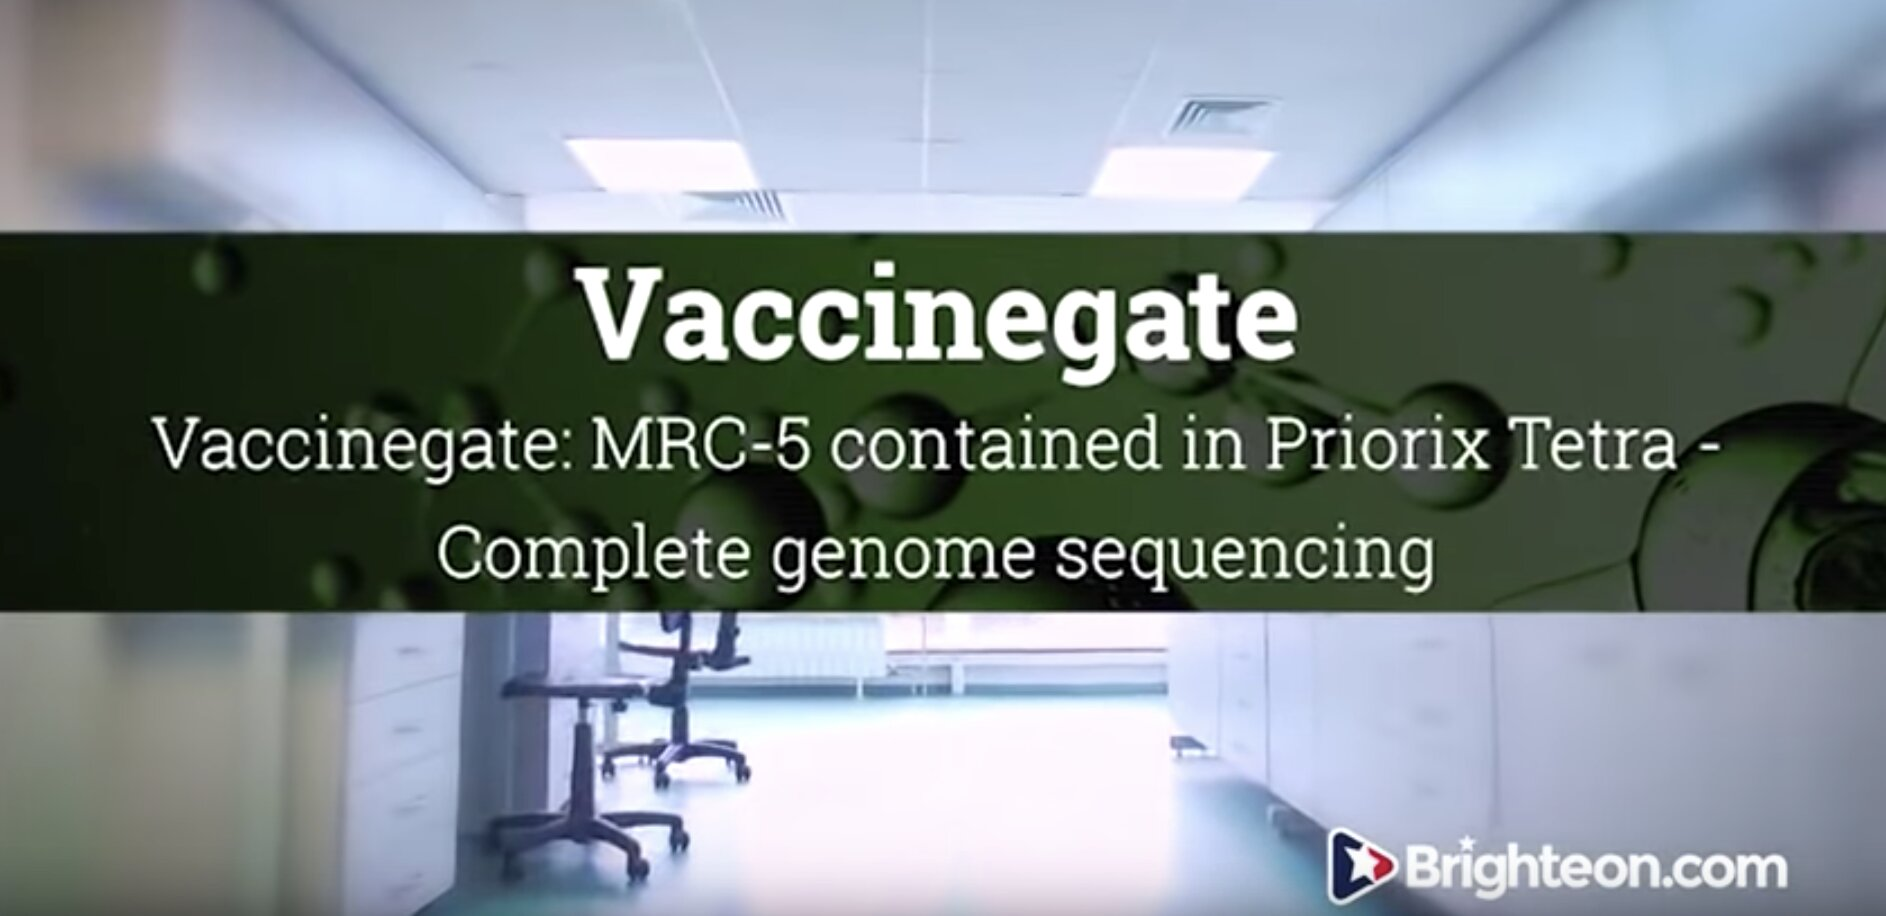 VACCINE HOLOCAUST! – Cancer genes are engineered into vaccines